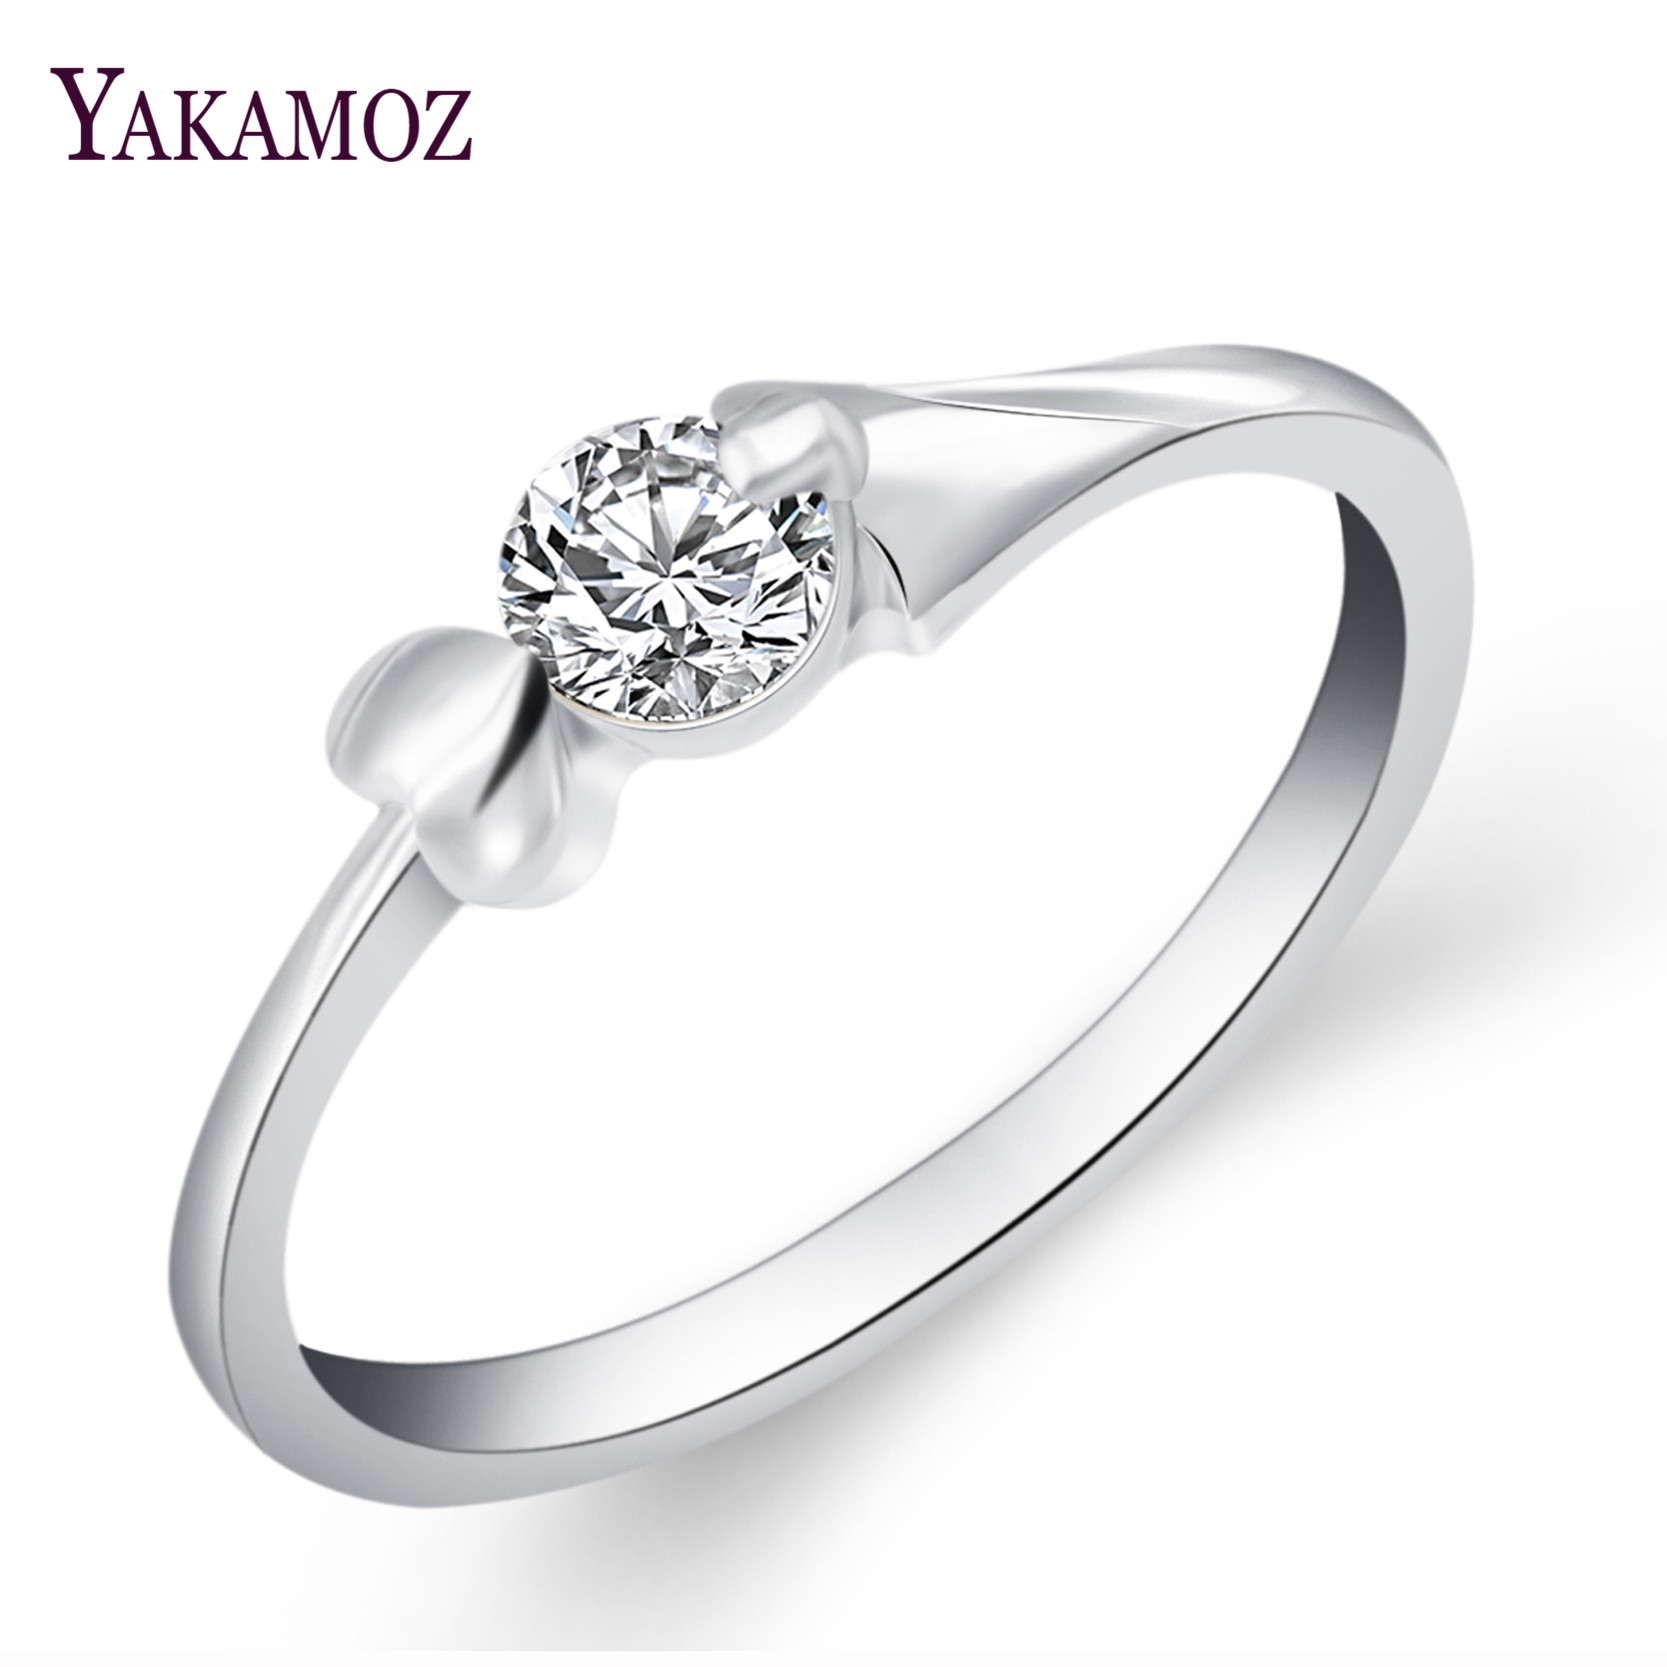 new vintage rings sliver color round cut white crystal cubic zirconia new engagement ring for women - Where To Sell Wedding Ring